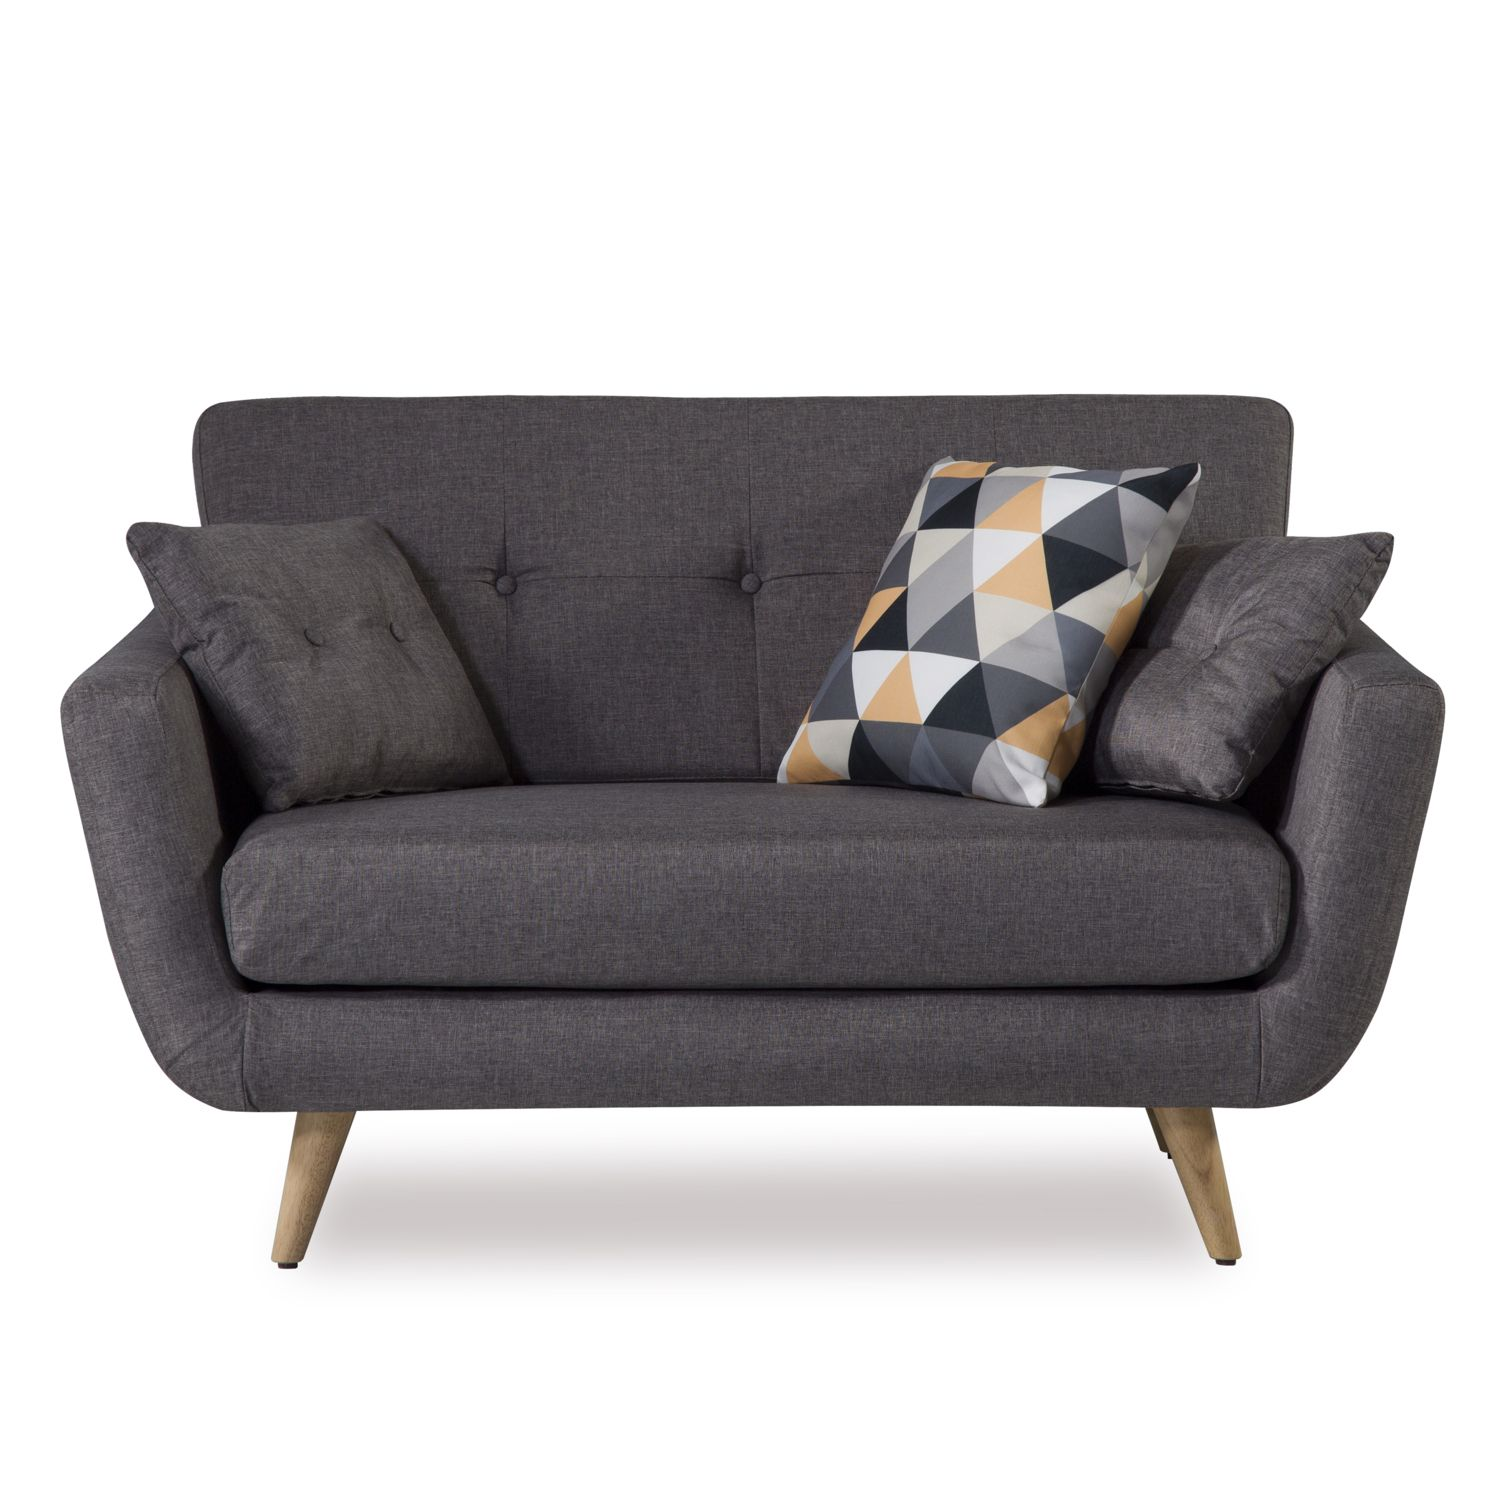 Zara Cuddle Chair Living room Pinterest